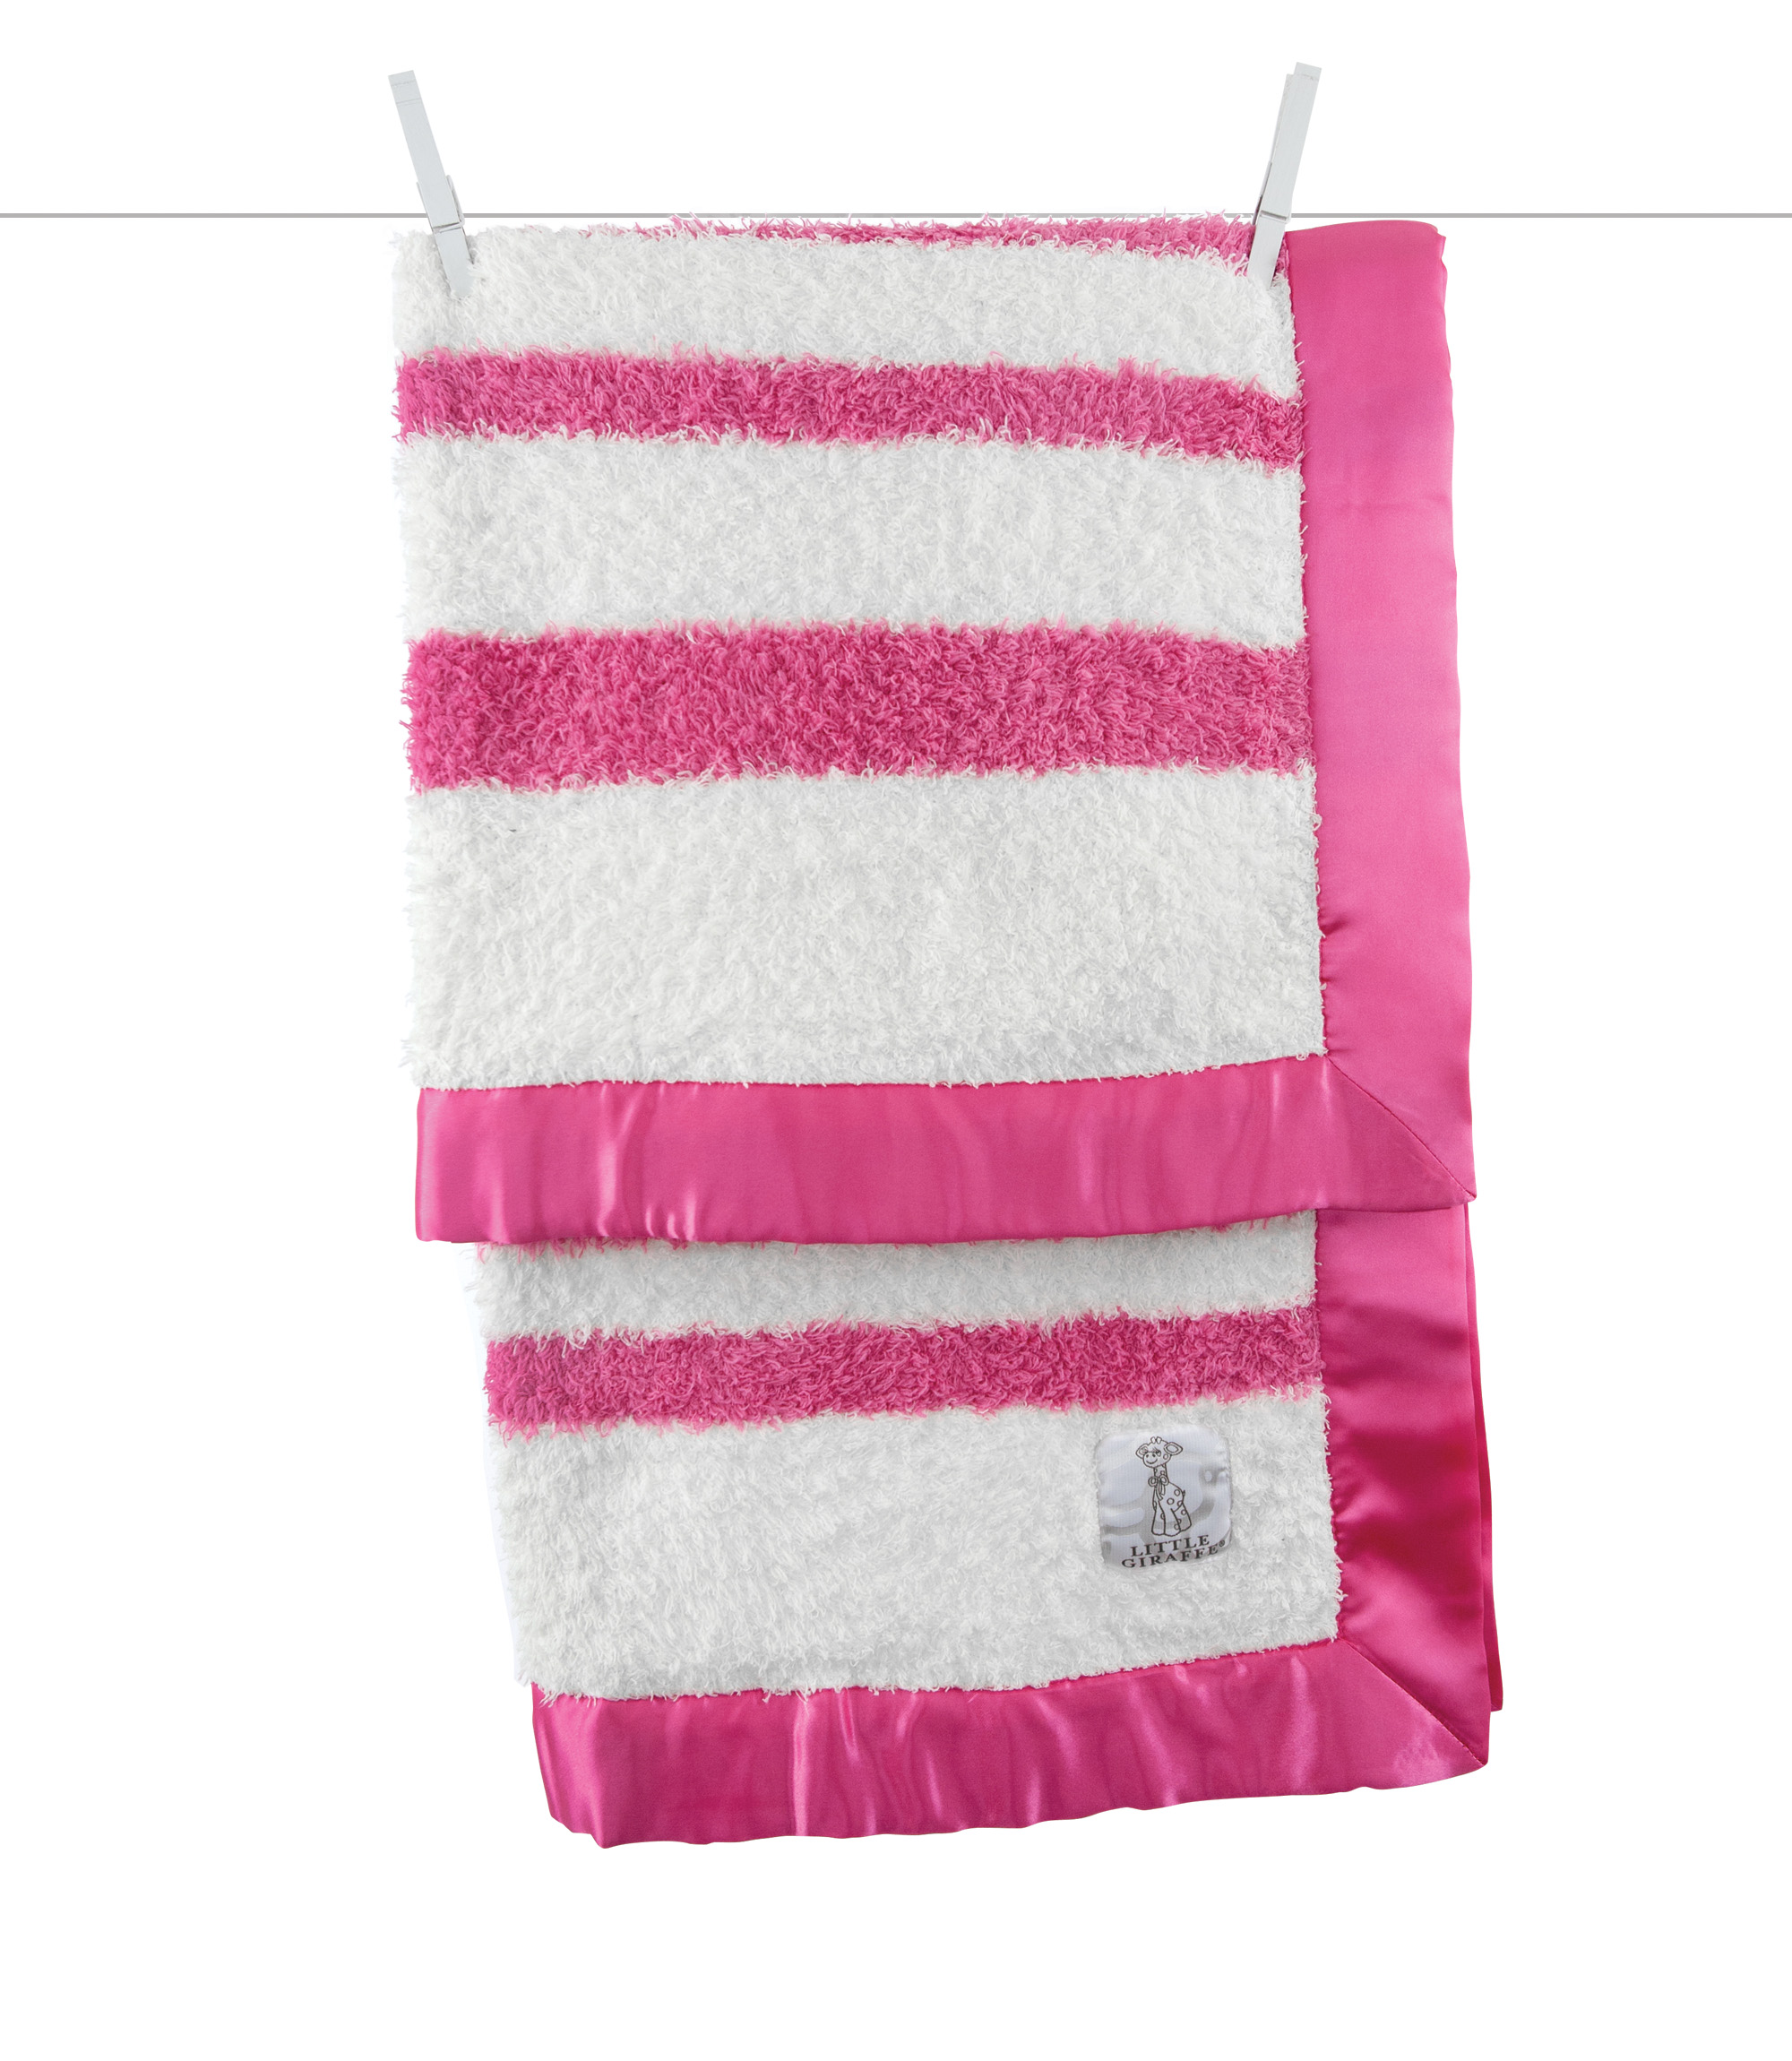 chenille blanket stripped white and pink with silky rim for blanket ideas